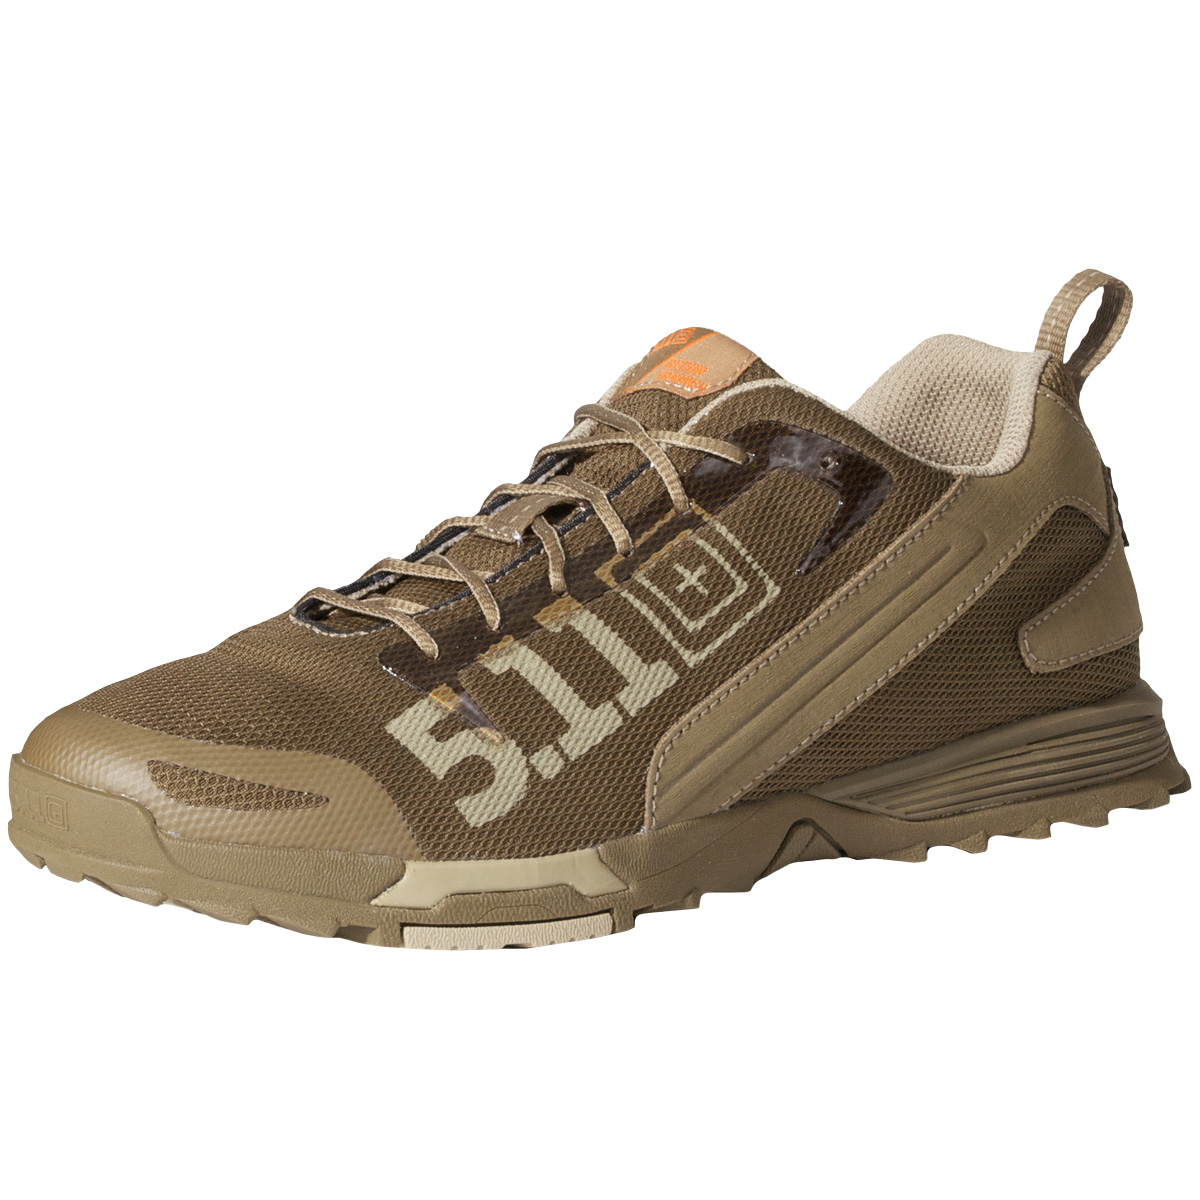 Tactical Running Shoes